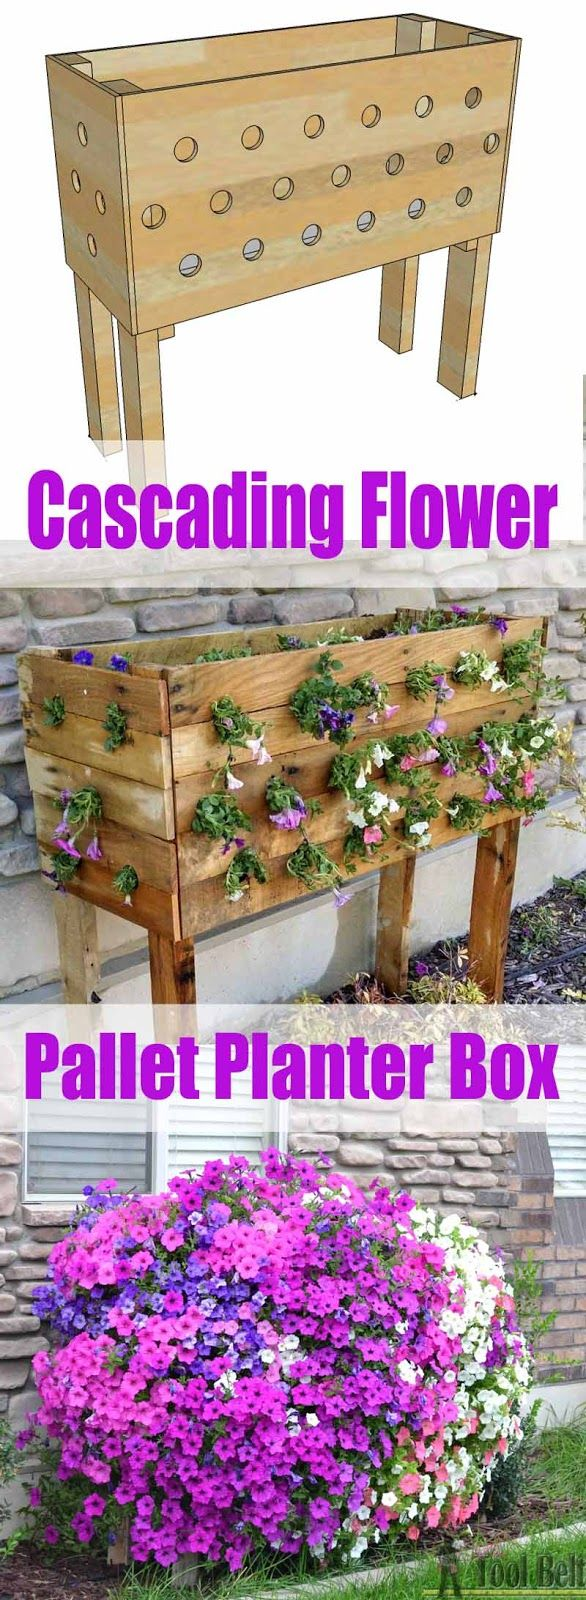 Pallet Box Planter for Cascading Flowers